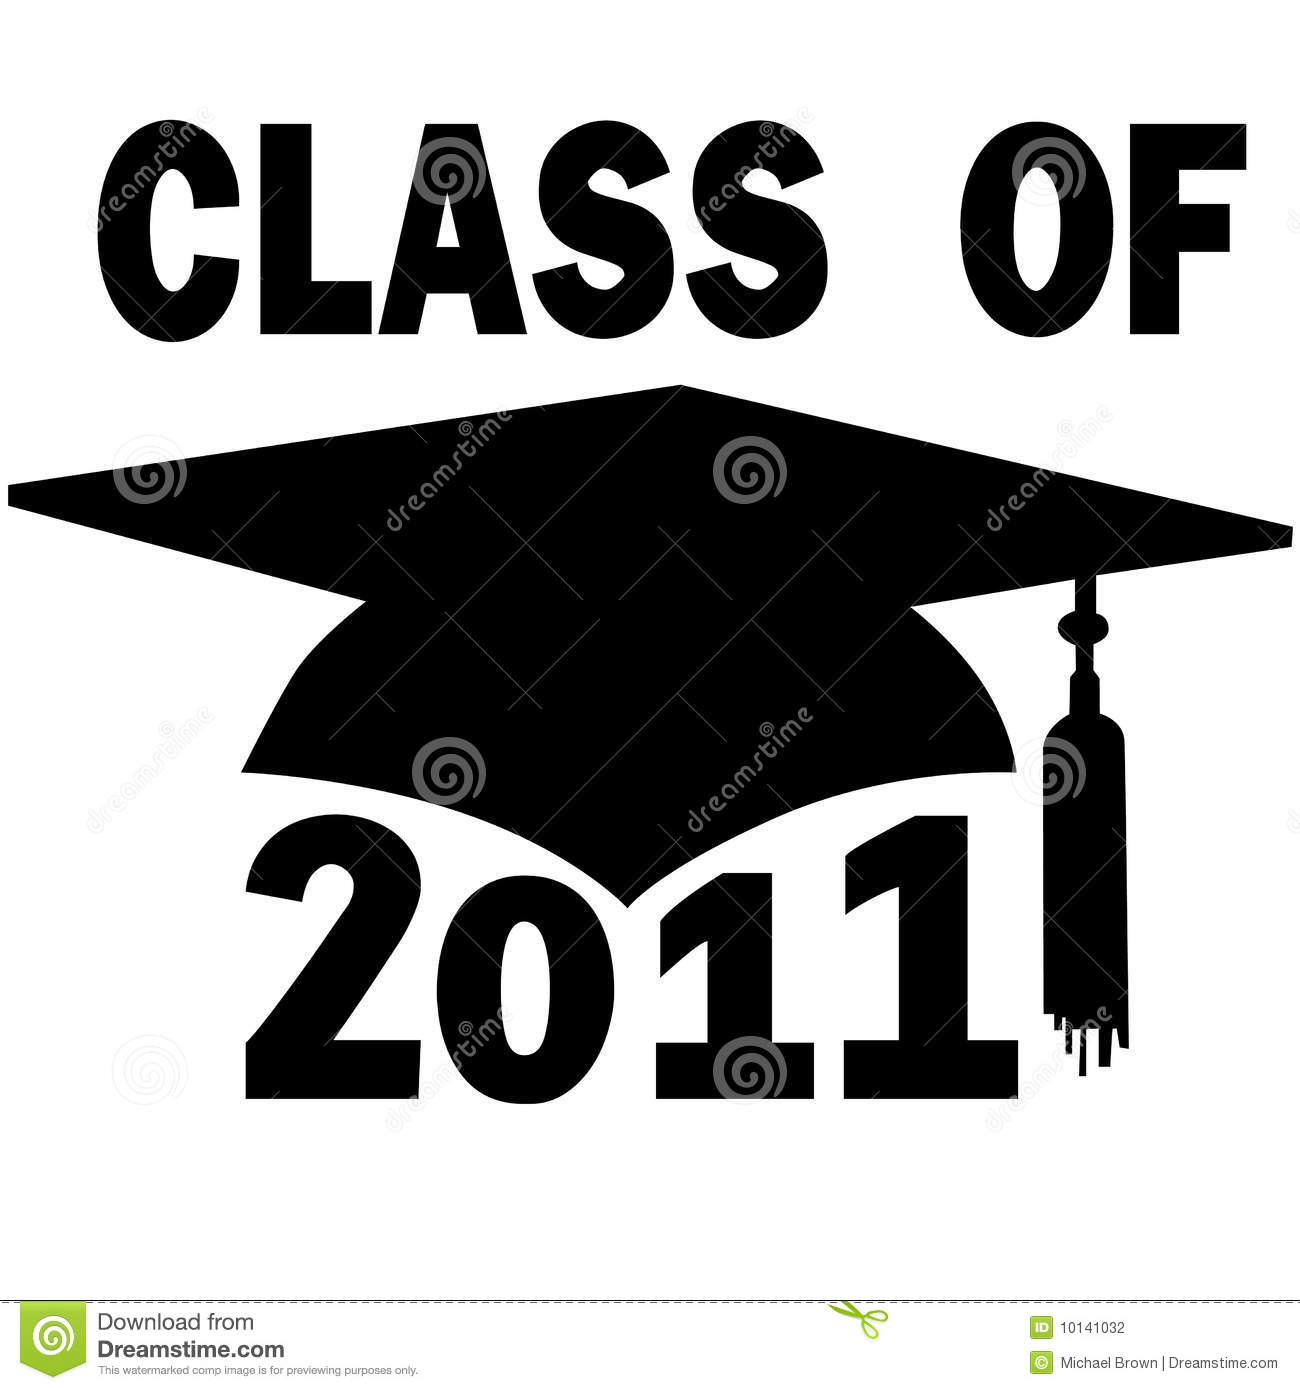 Class of 2011 clipart banner royalty free Class of 2011 clipart - ClipartFest banner royalty free